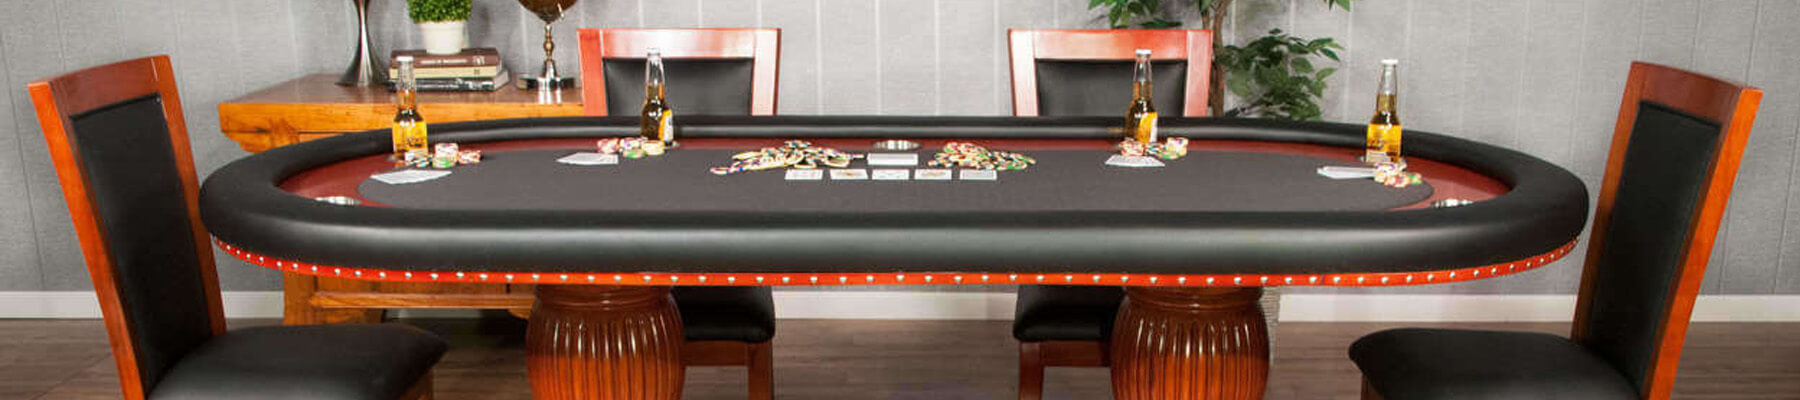 Hold'em and Host'em: A House Party Game Guide for Poker - Gaming Blaze